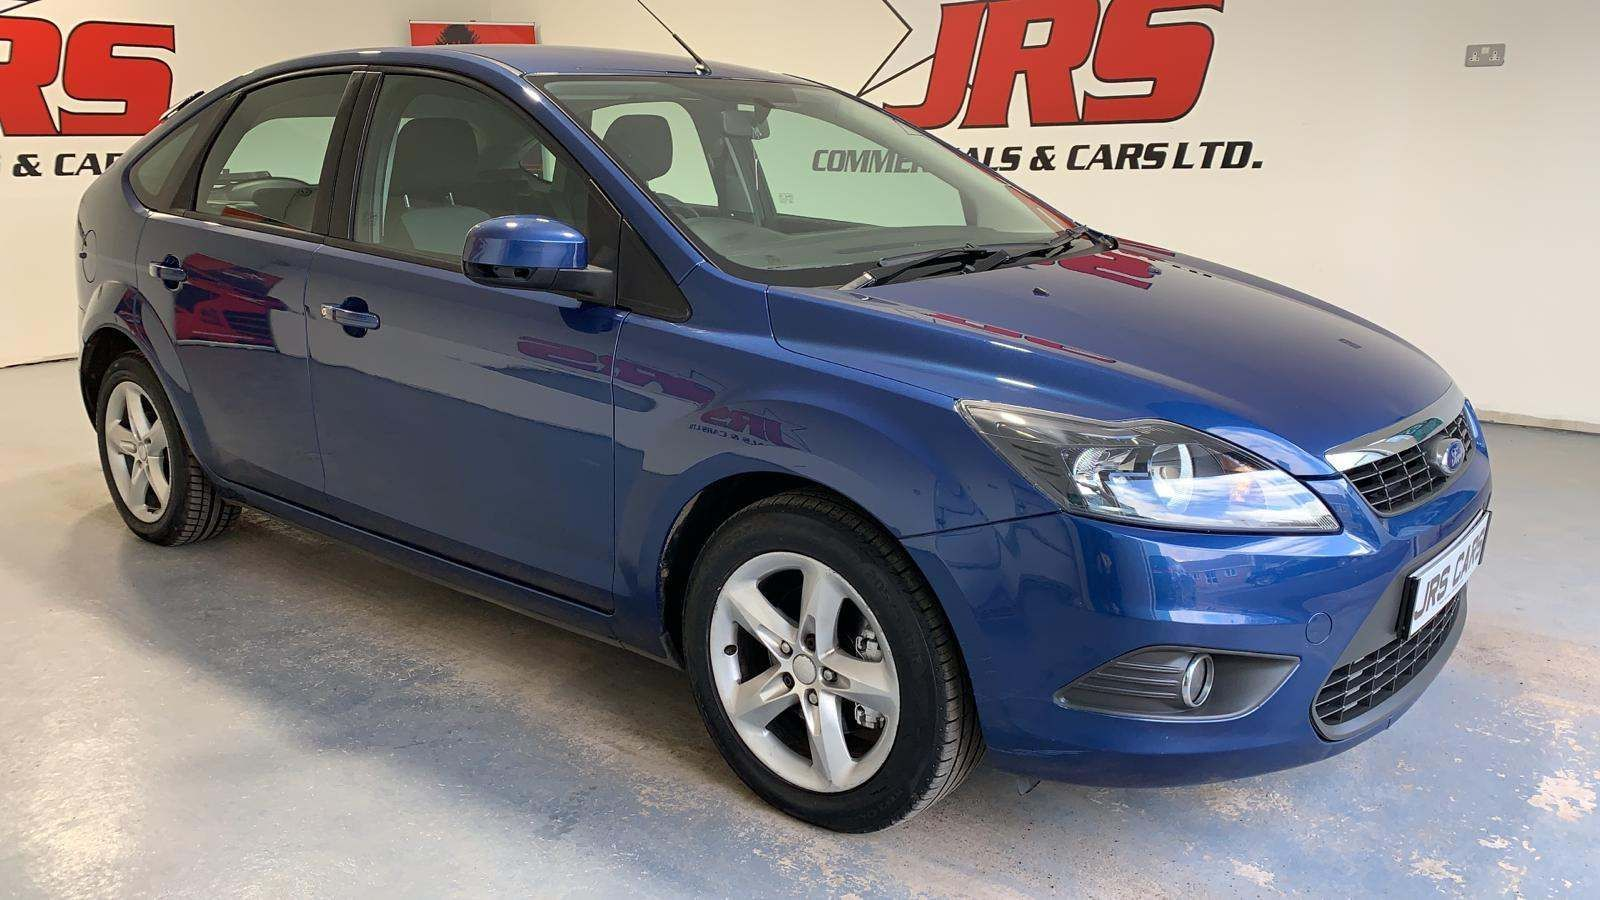 2010 FORD Focus 1.6 TDCi DPF Zetec Diesel Manual **£30 Road Tax** – J R S Commercials And Cars Dungannon